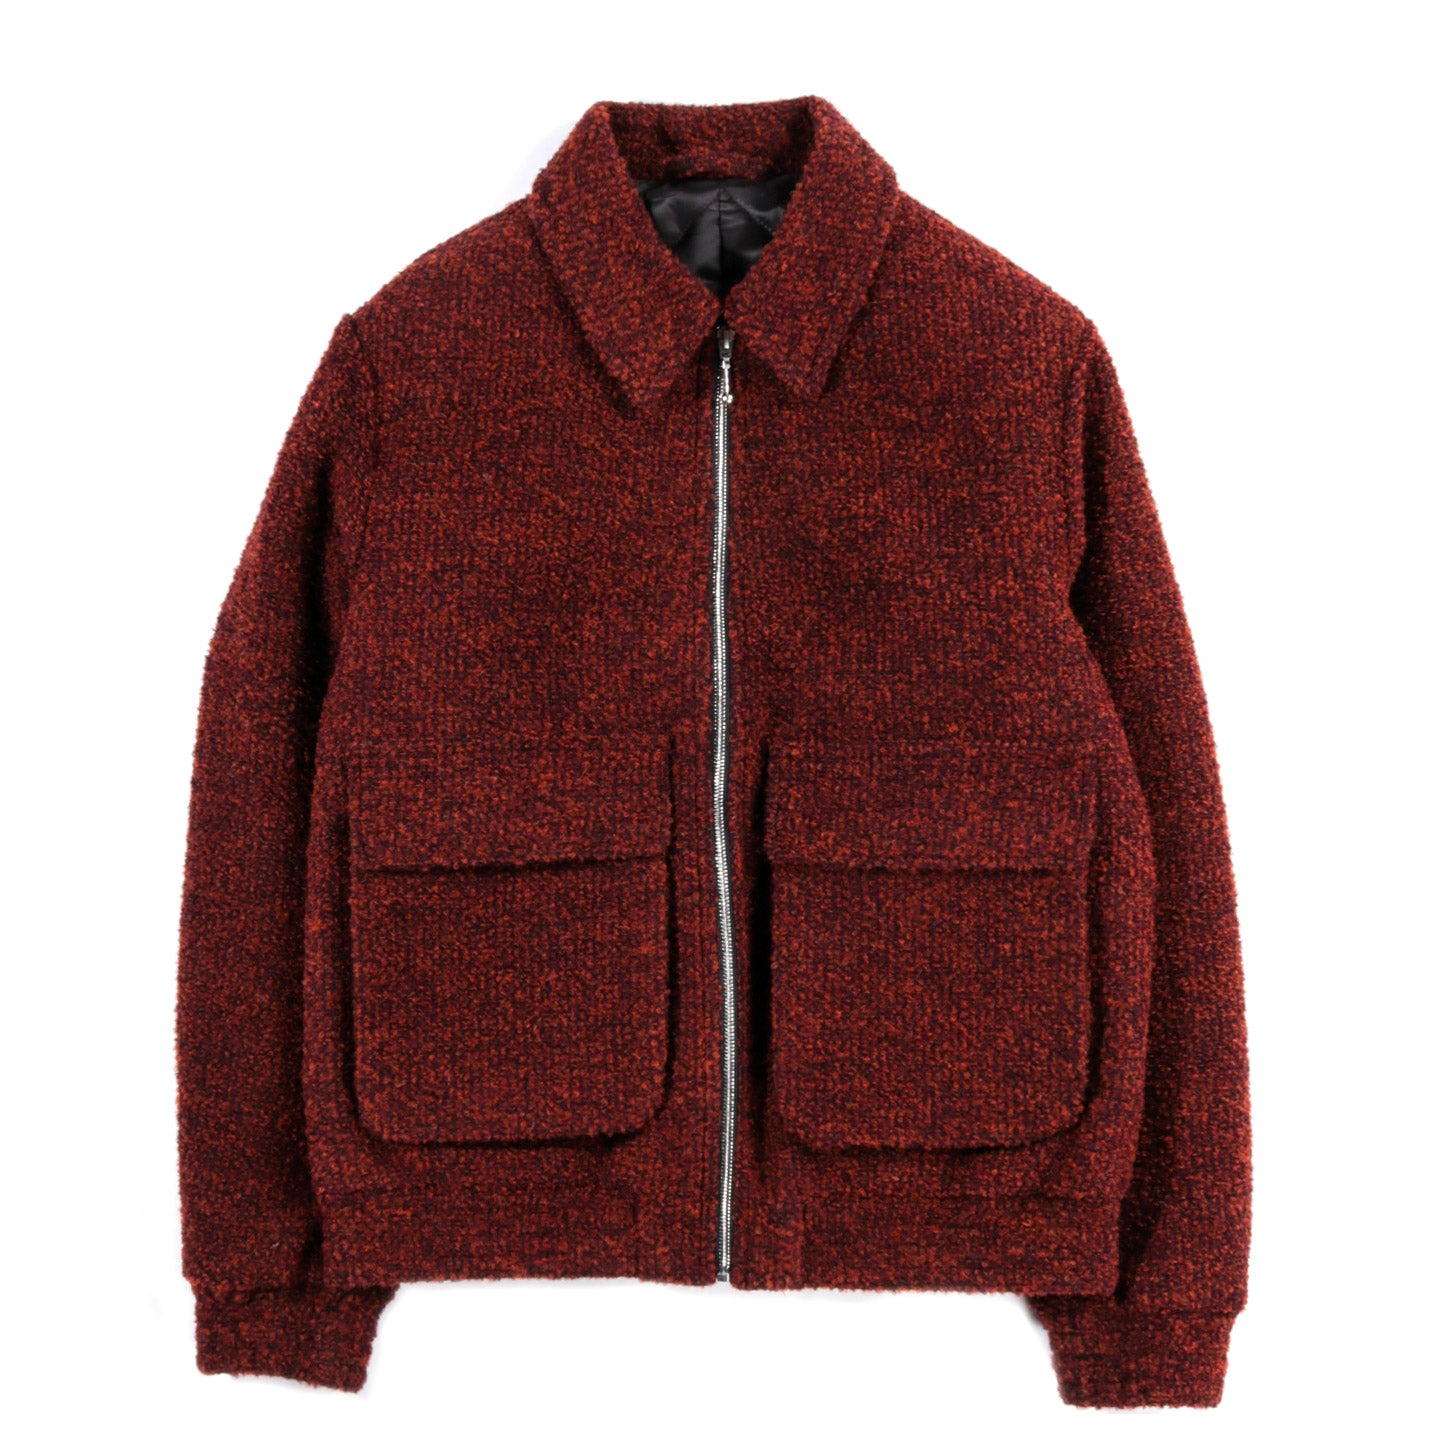 A KIND OF GUISE AVALON JACKET BURNED RED